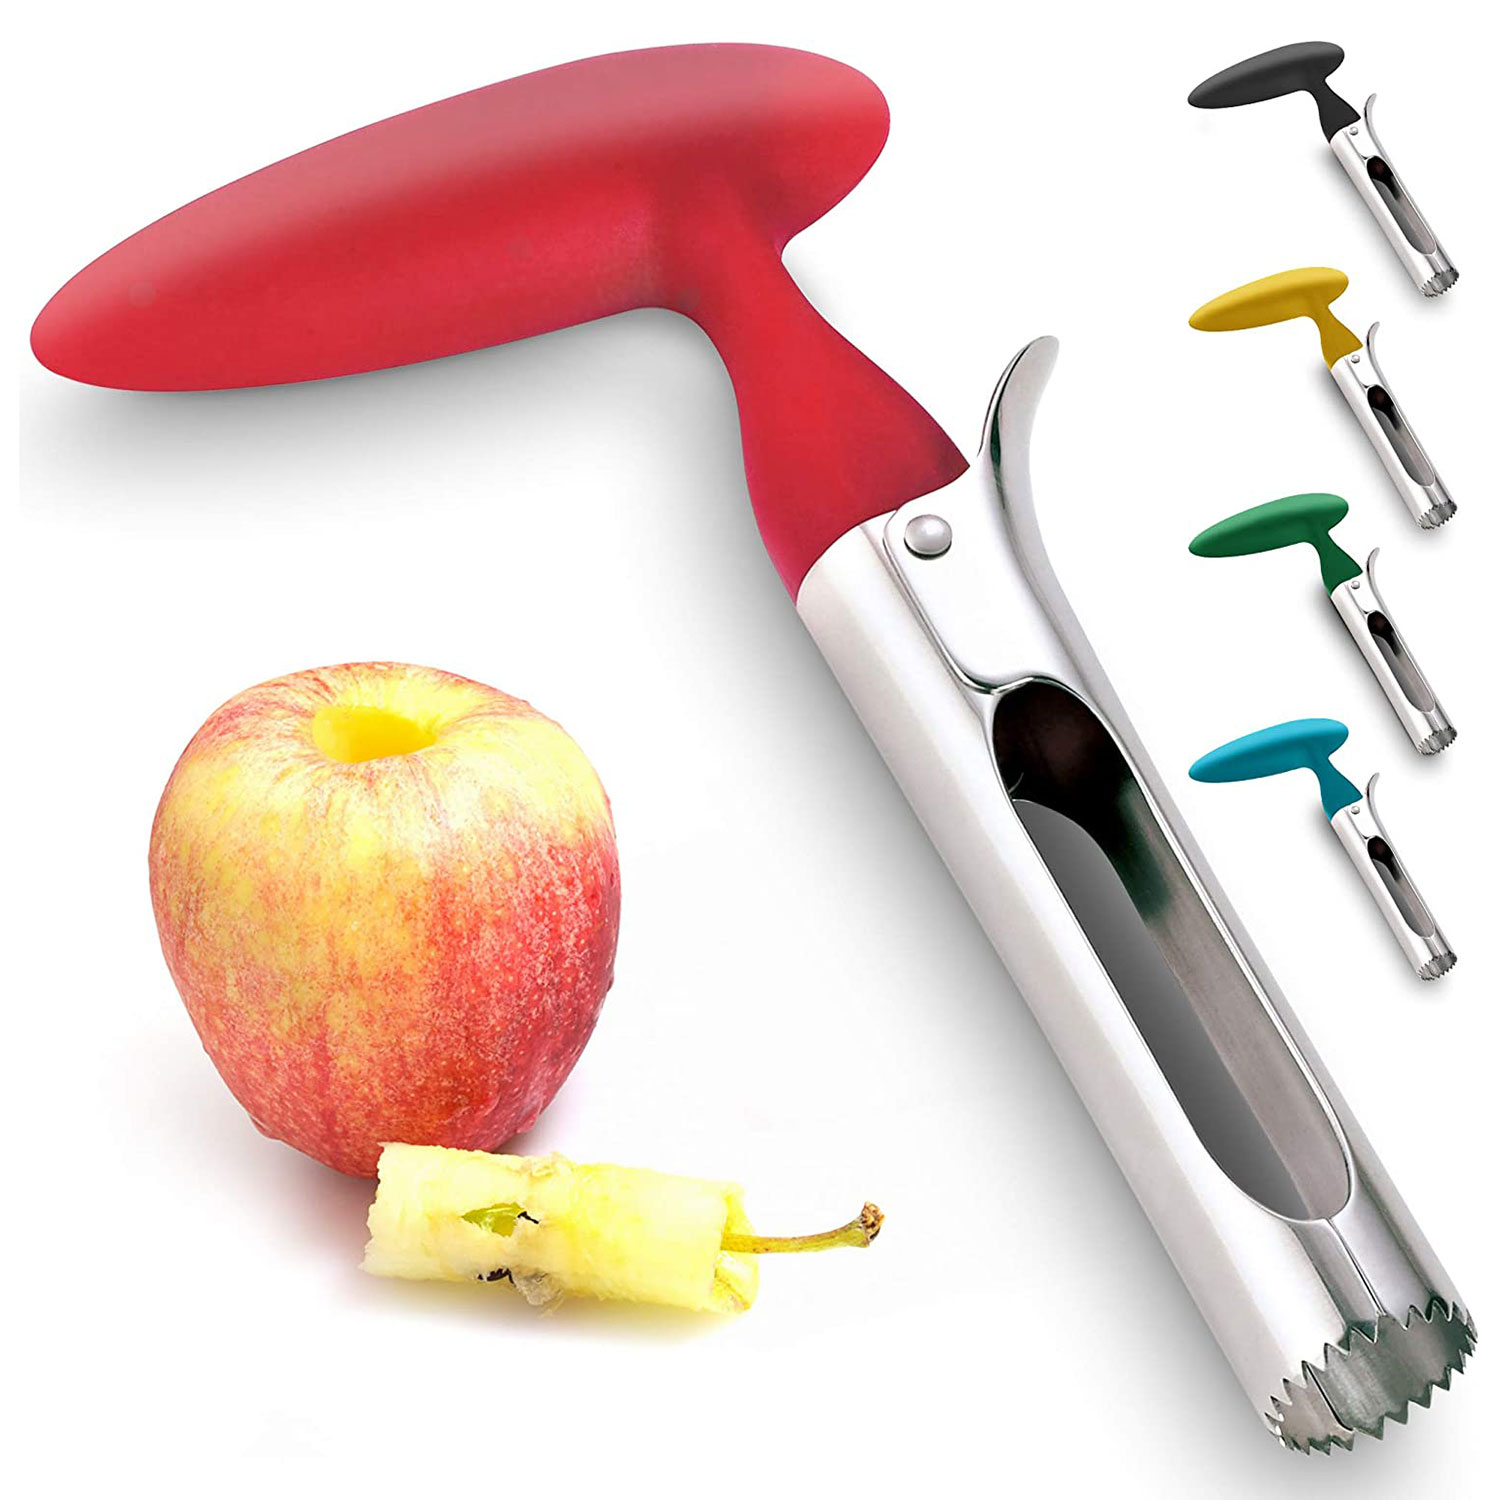 Premium Apple Corer - Easy to Use Durable Apple Corer Remover for Pear